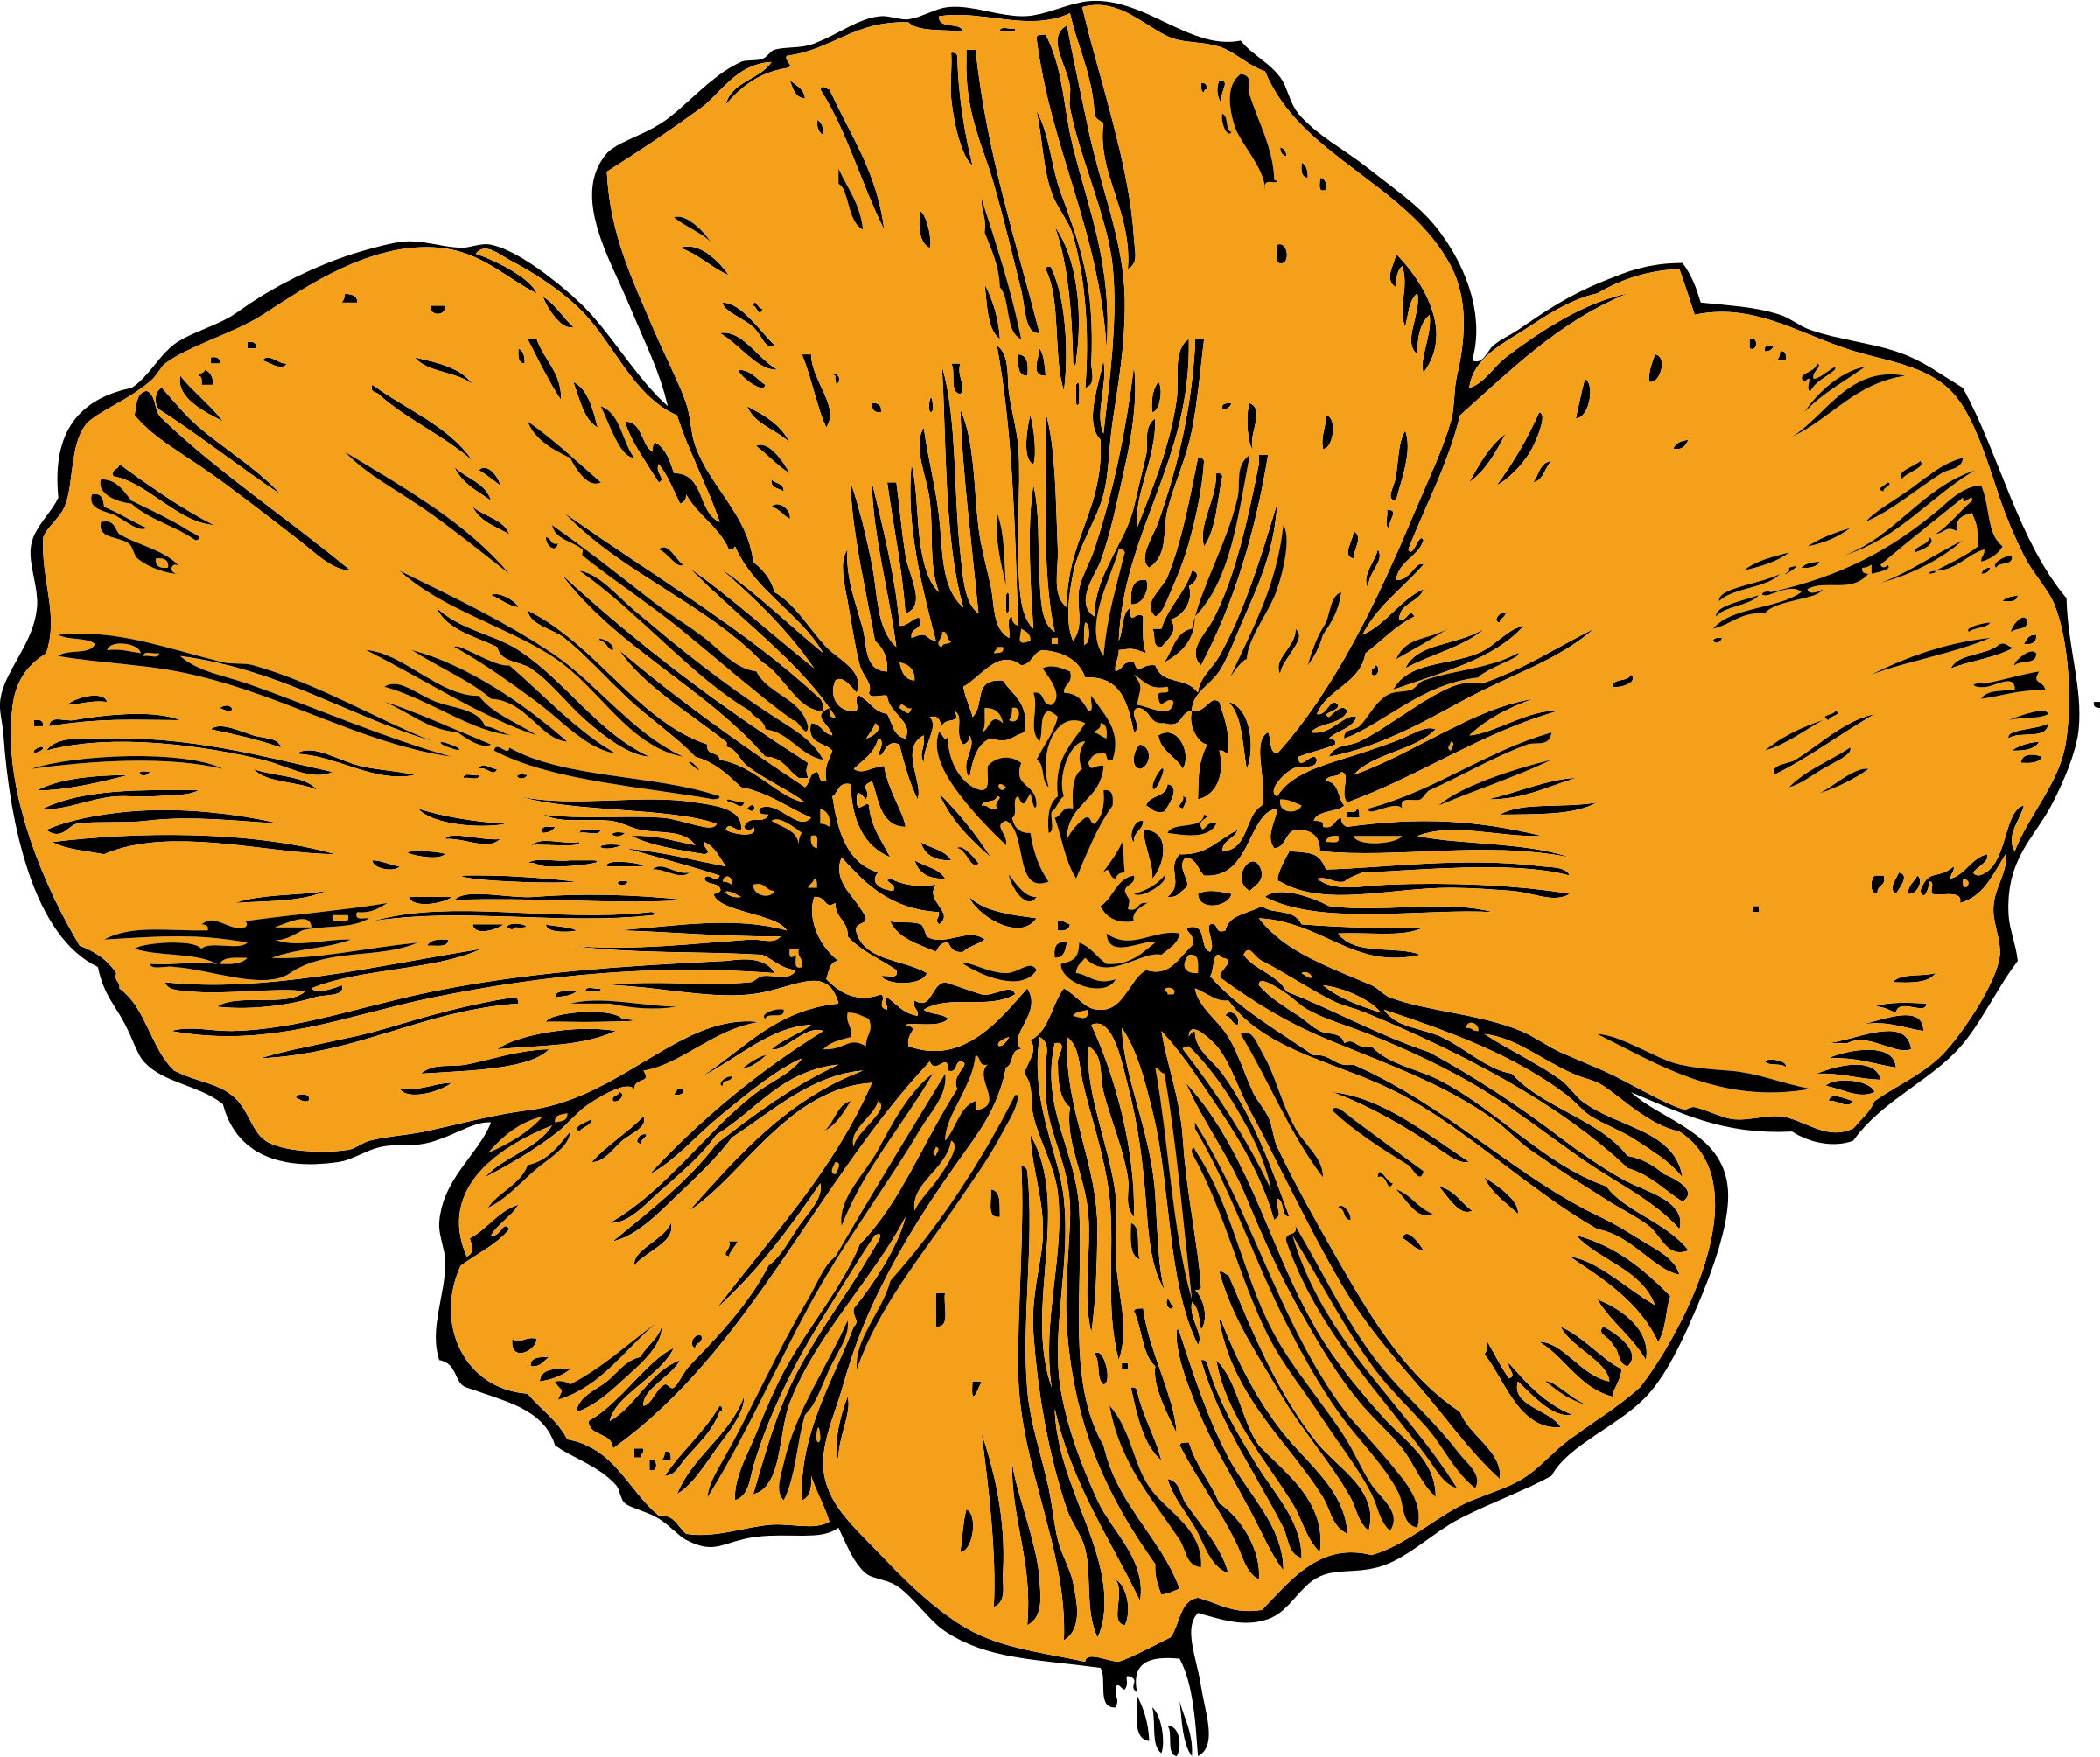 California big image png. Poppy clipart ww1